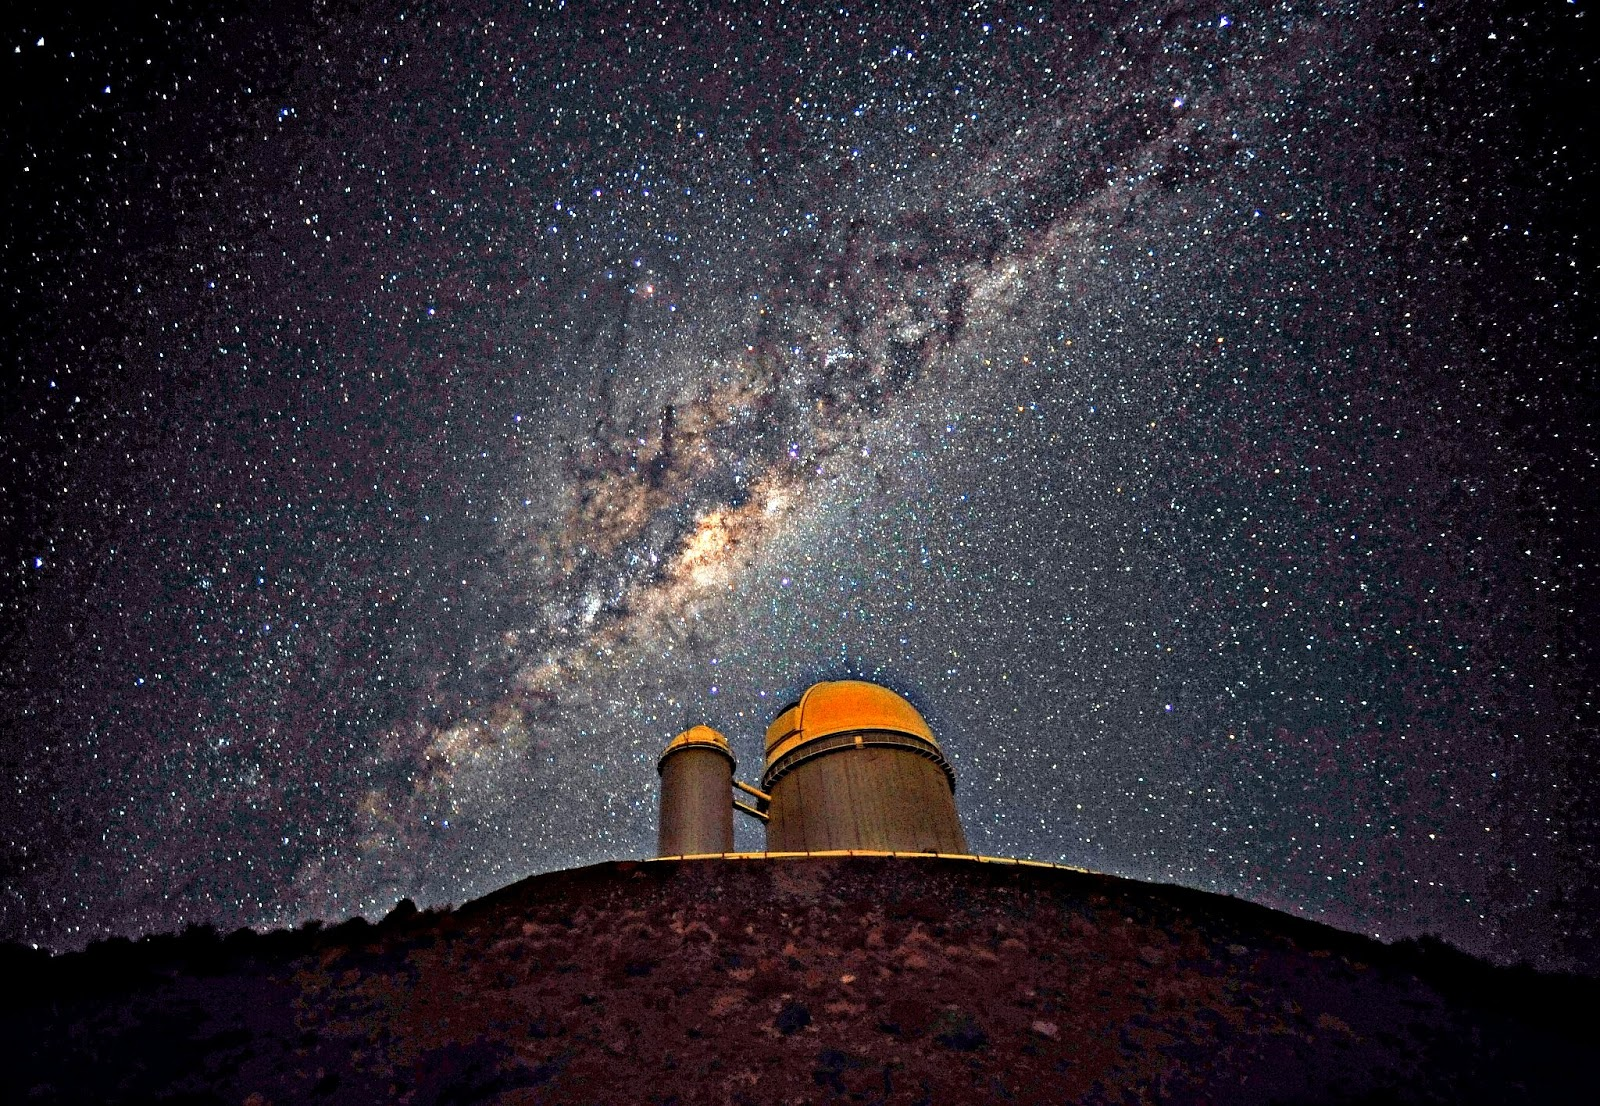 Milky Way from Earth Wallpaper - WallpaperSafari